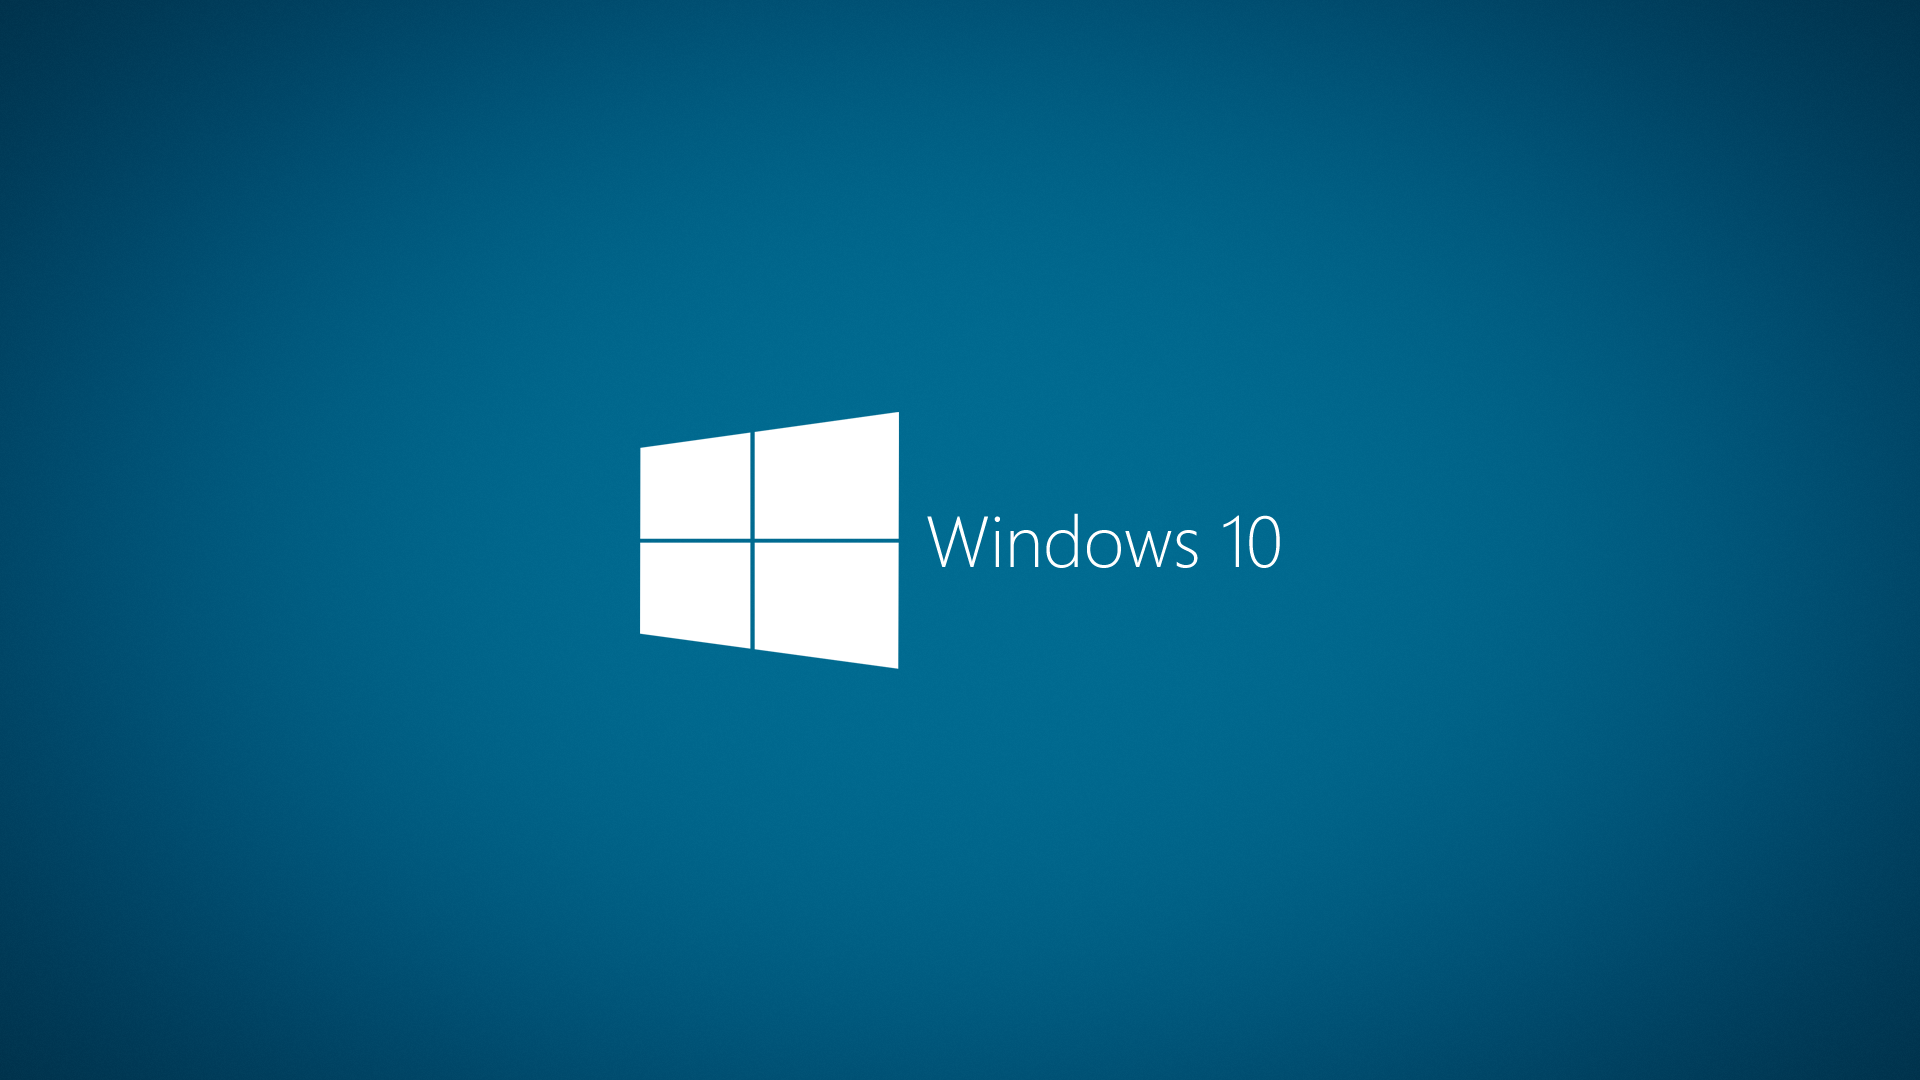 Windows 10 full hd fondo de pantalla and fondo de escritorio 1920x1080 id 637173 - Fondos de escritorio hd para windows ...